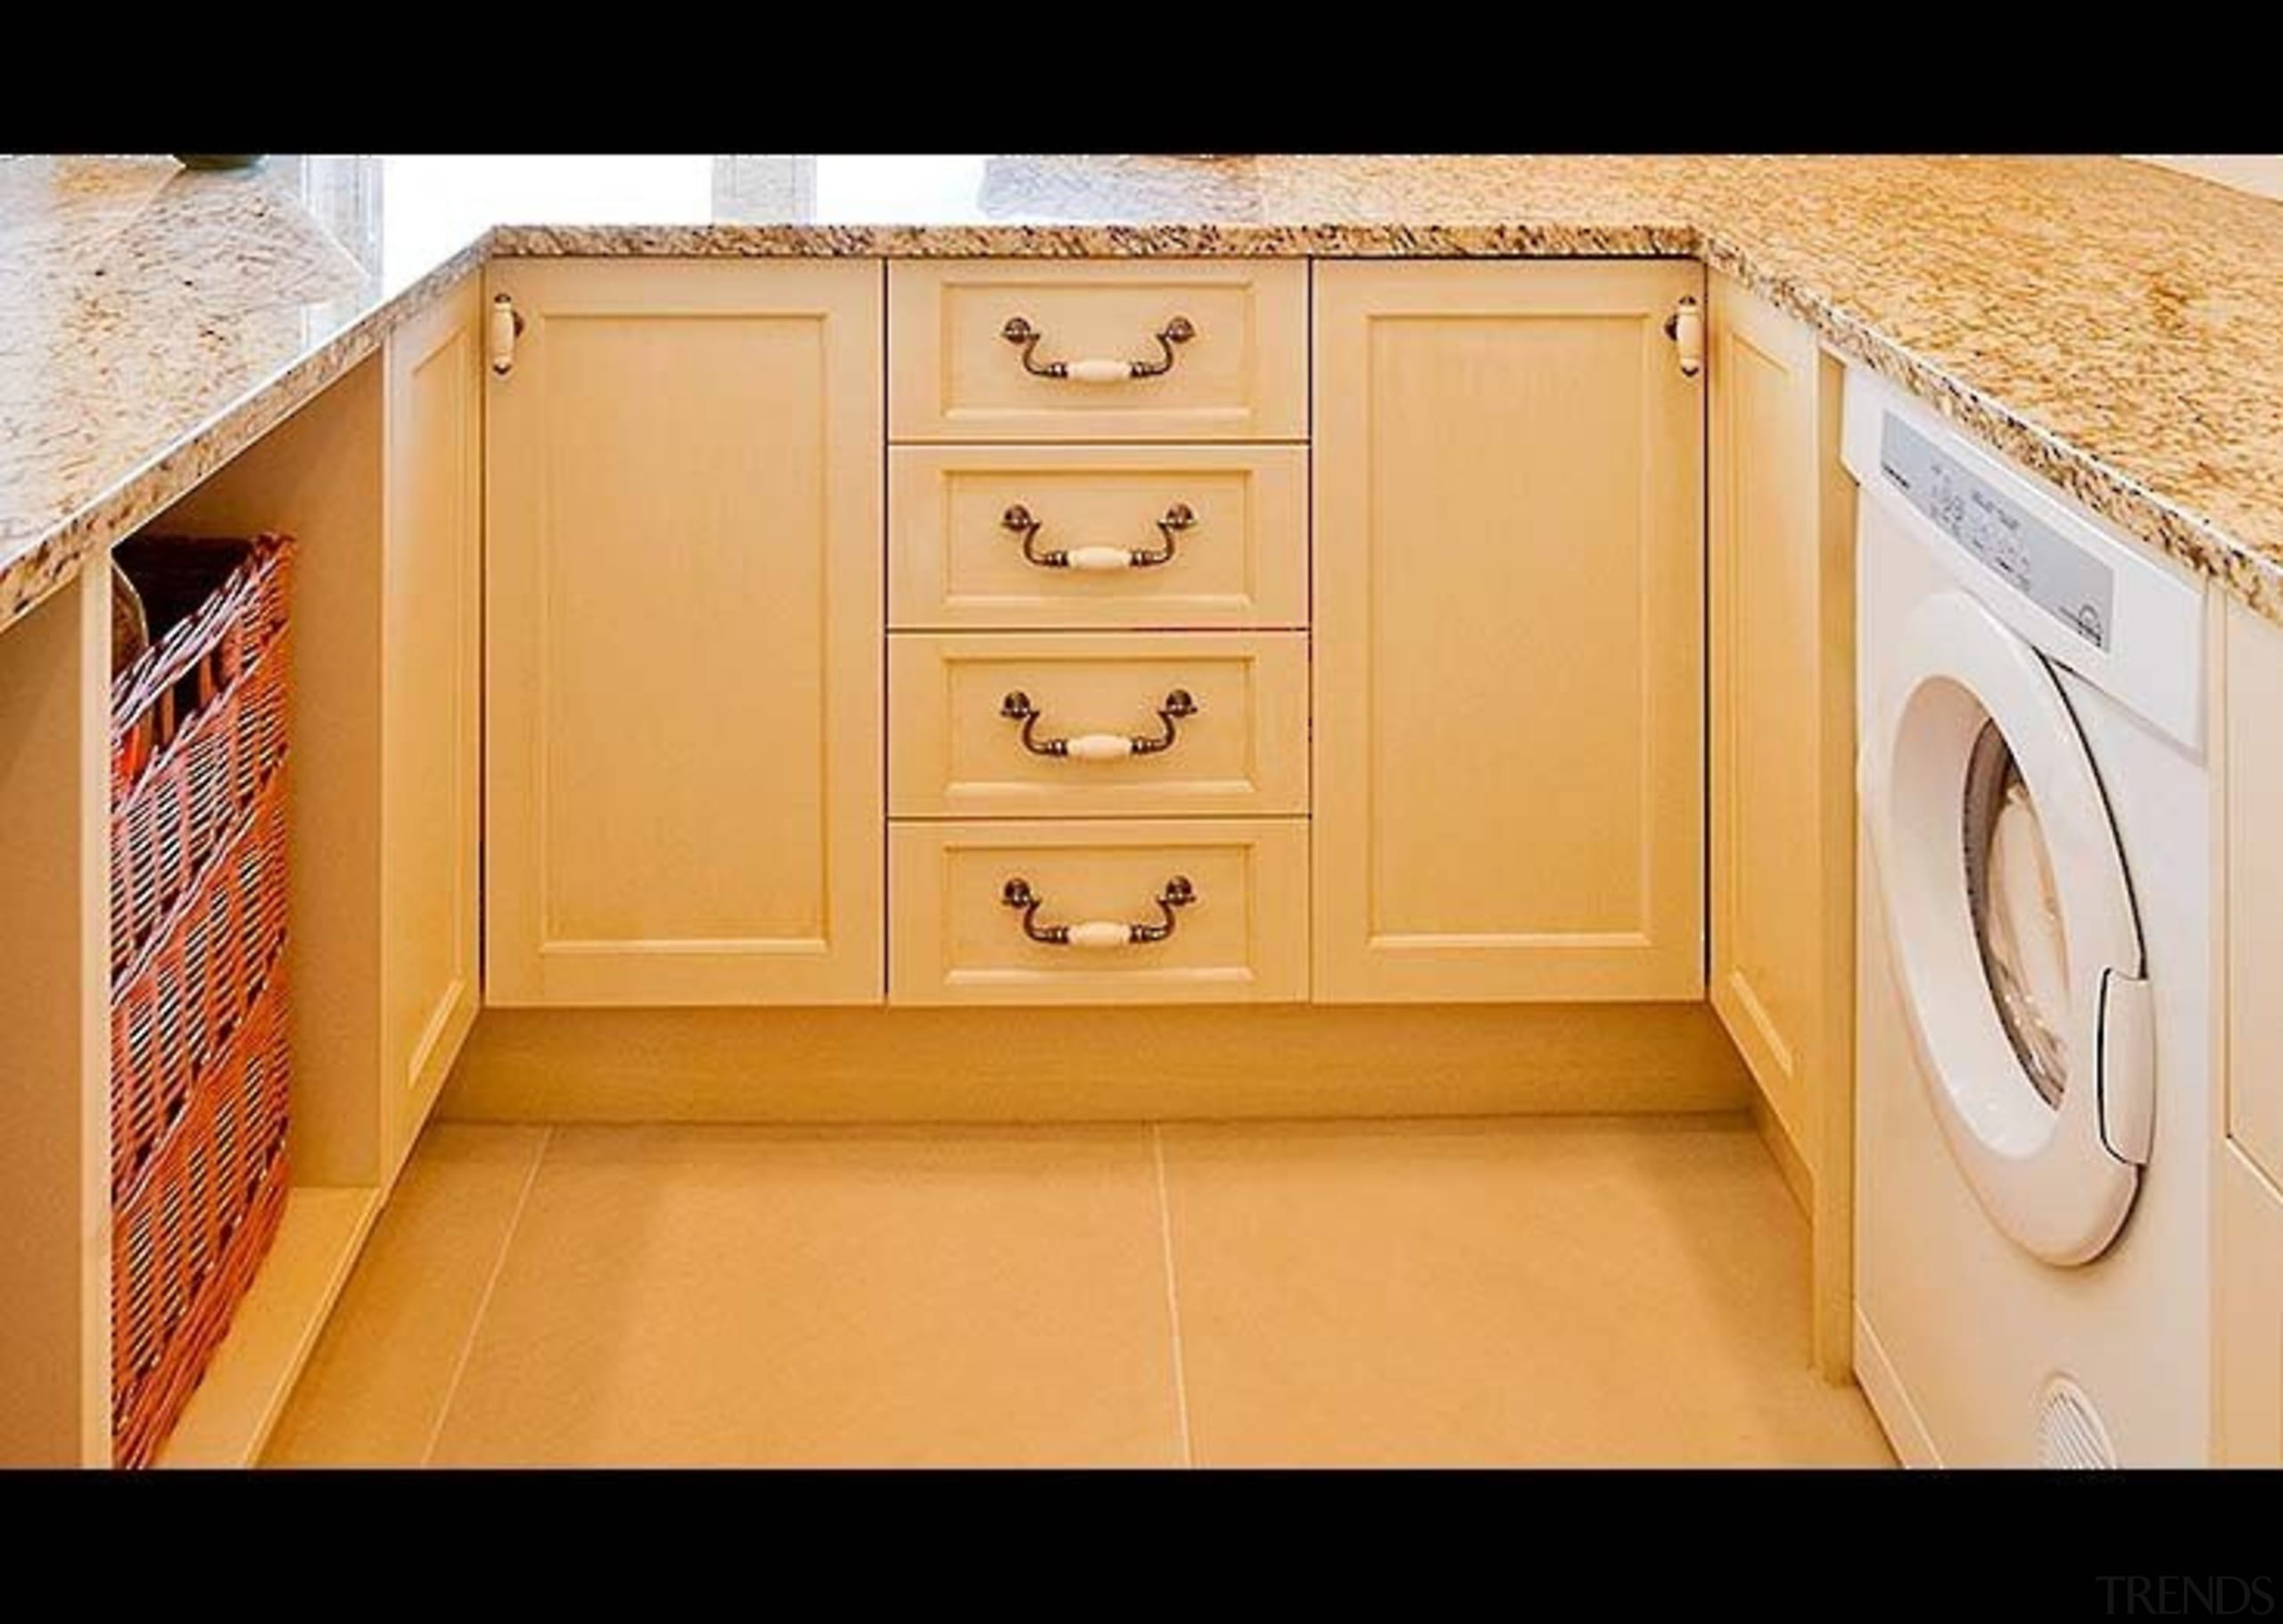 Traditional Laundry - cabinetry | countertop | cupboard cabinetry, countertop, cupboard, drawer, floor, flooring, furniture, hardwood, kitchen, product, property, room, wood, wood stain, orange